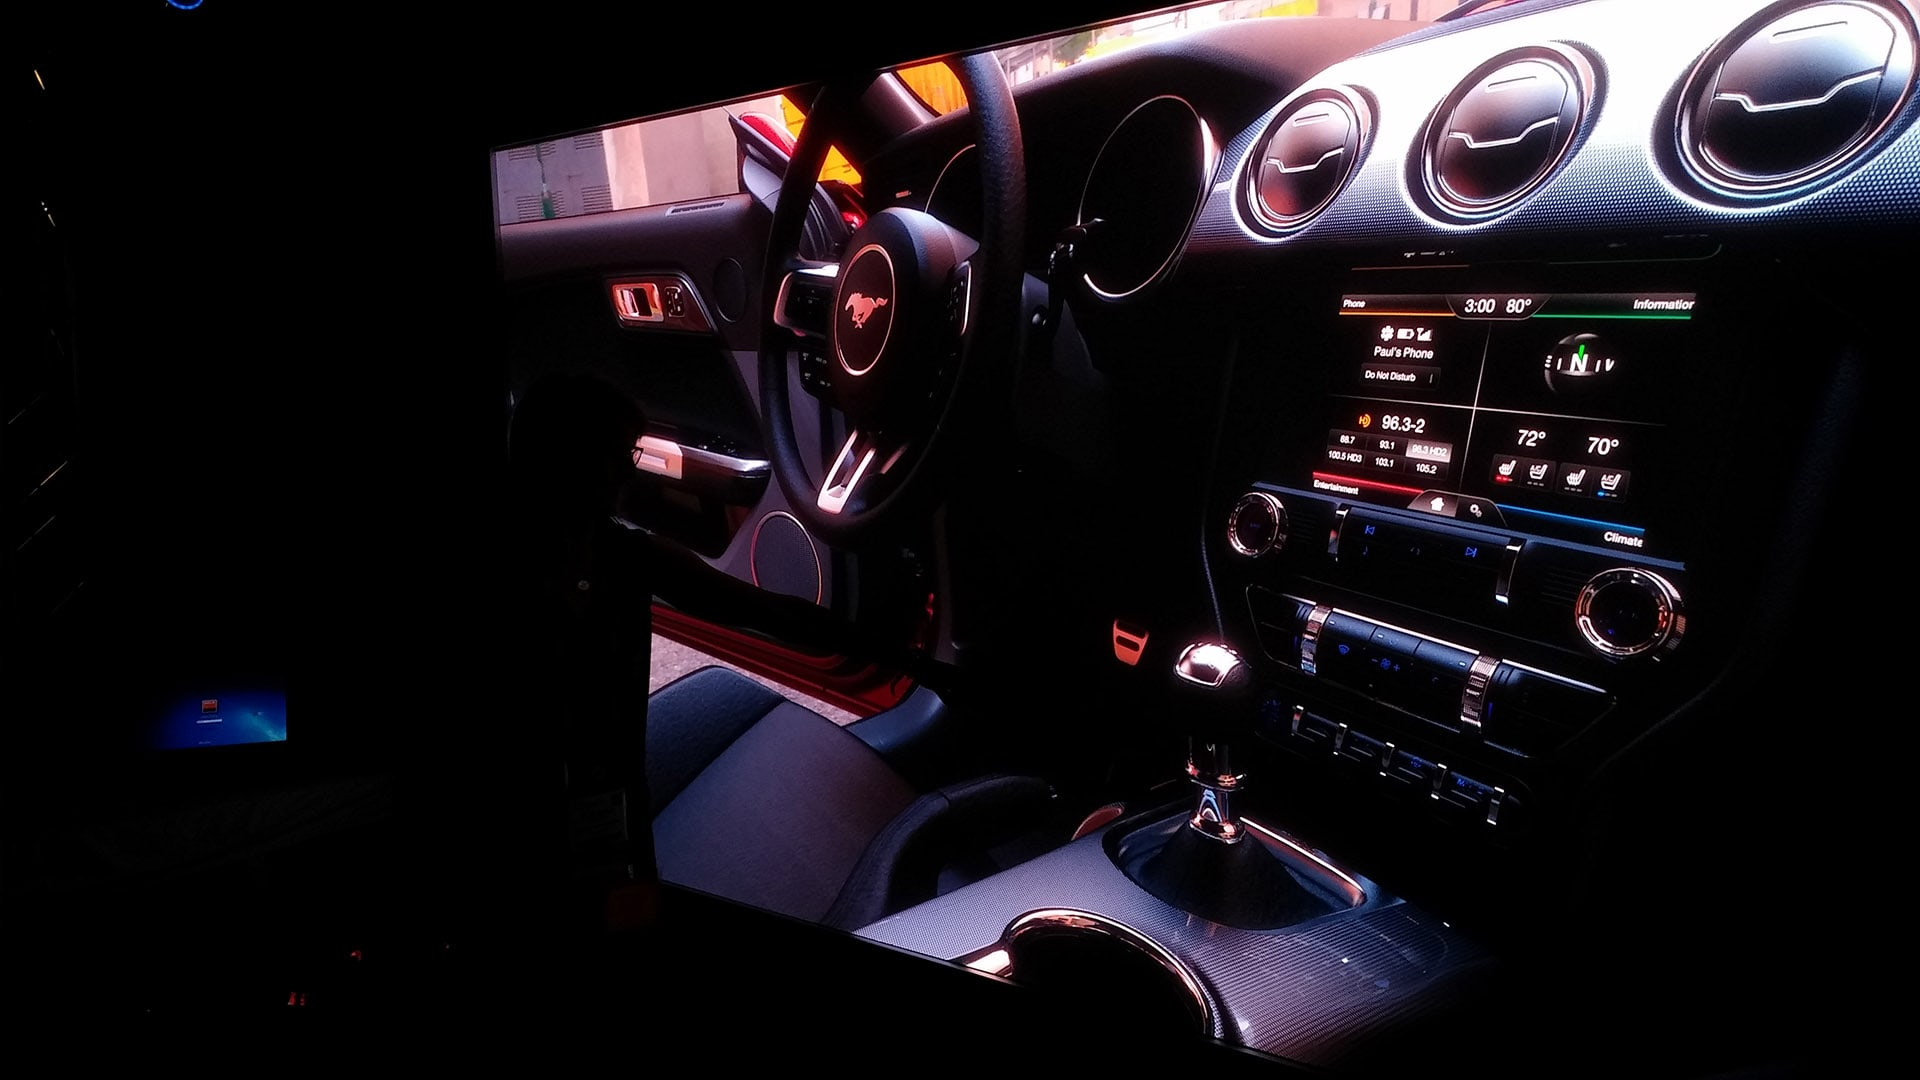 Ford Mustang interior 4K projection powerwall